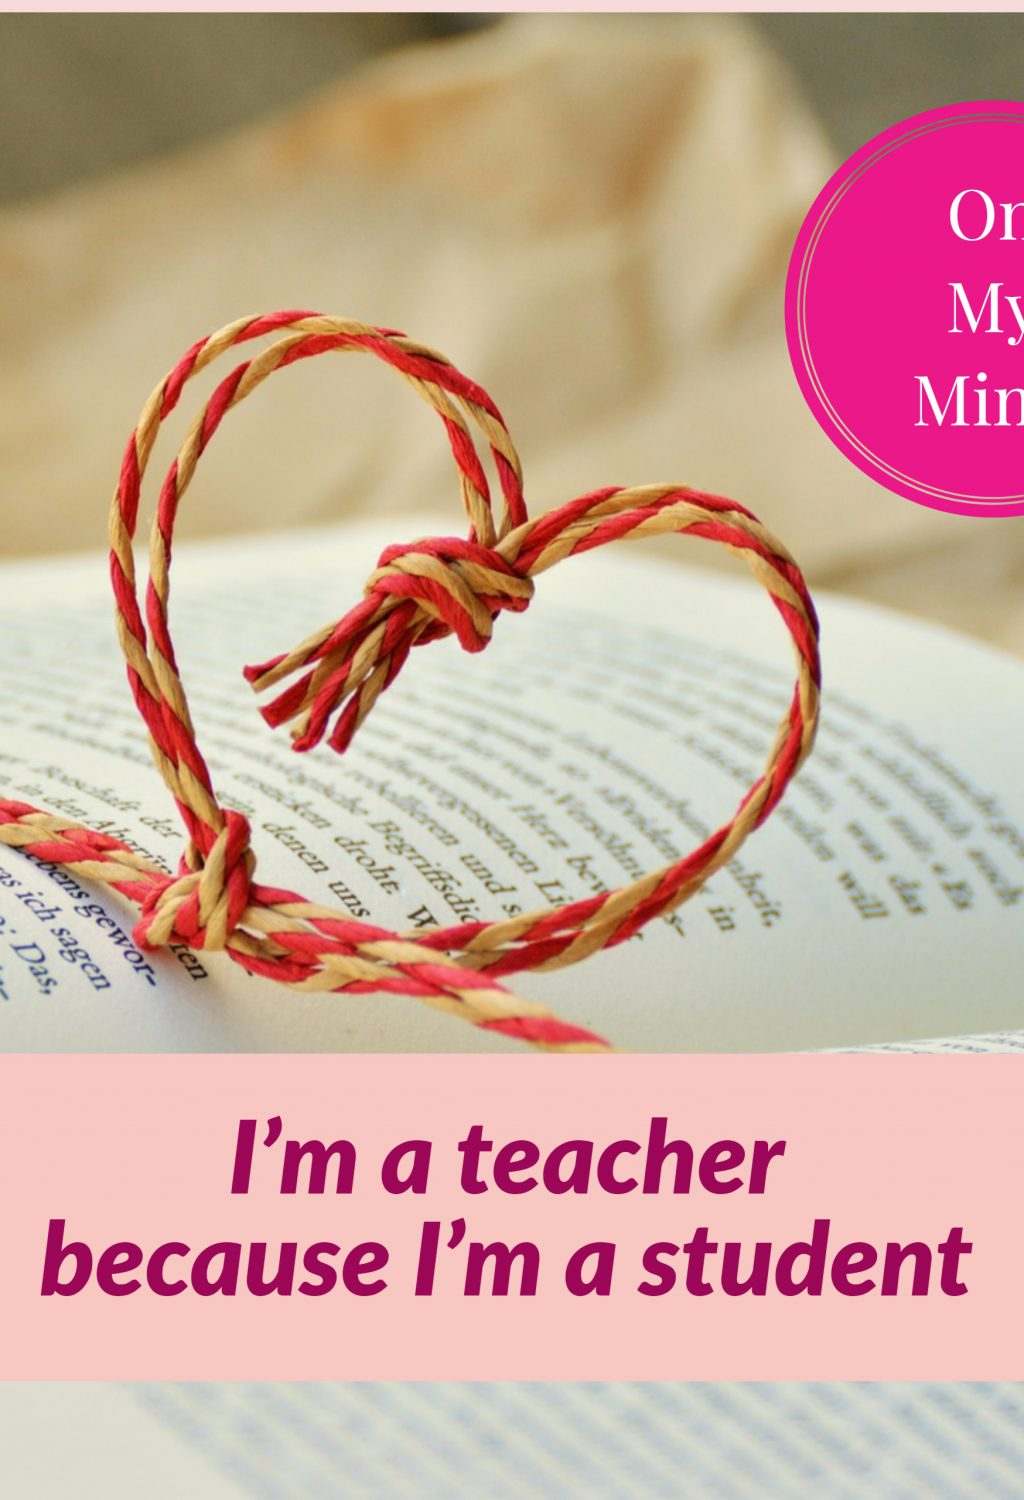 On my mind - I am teacher because I am student